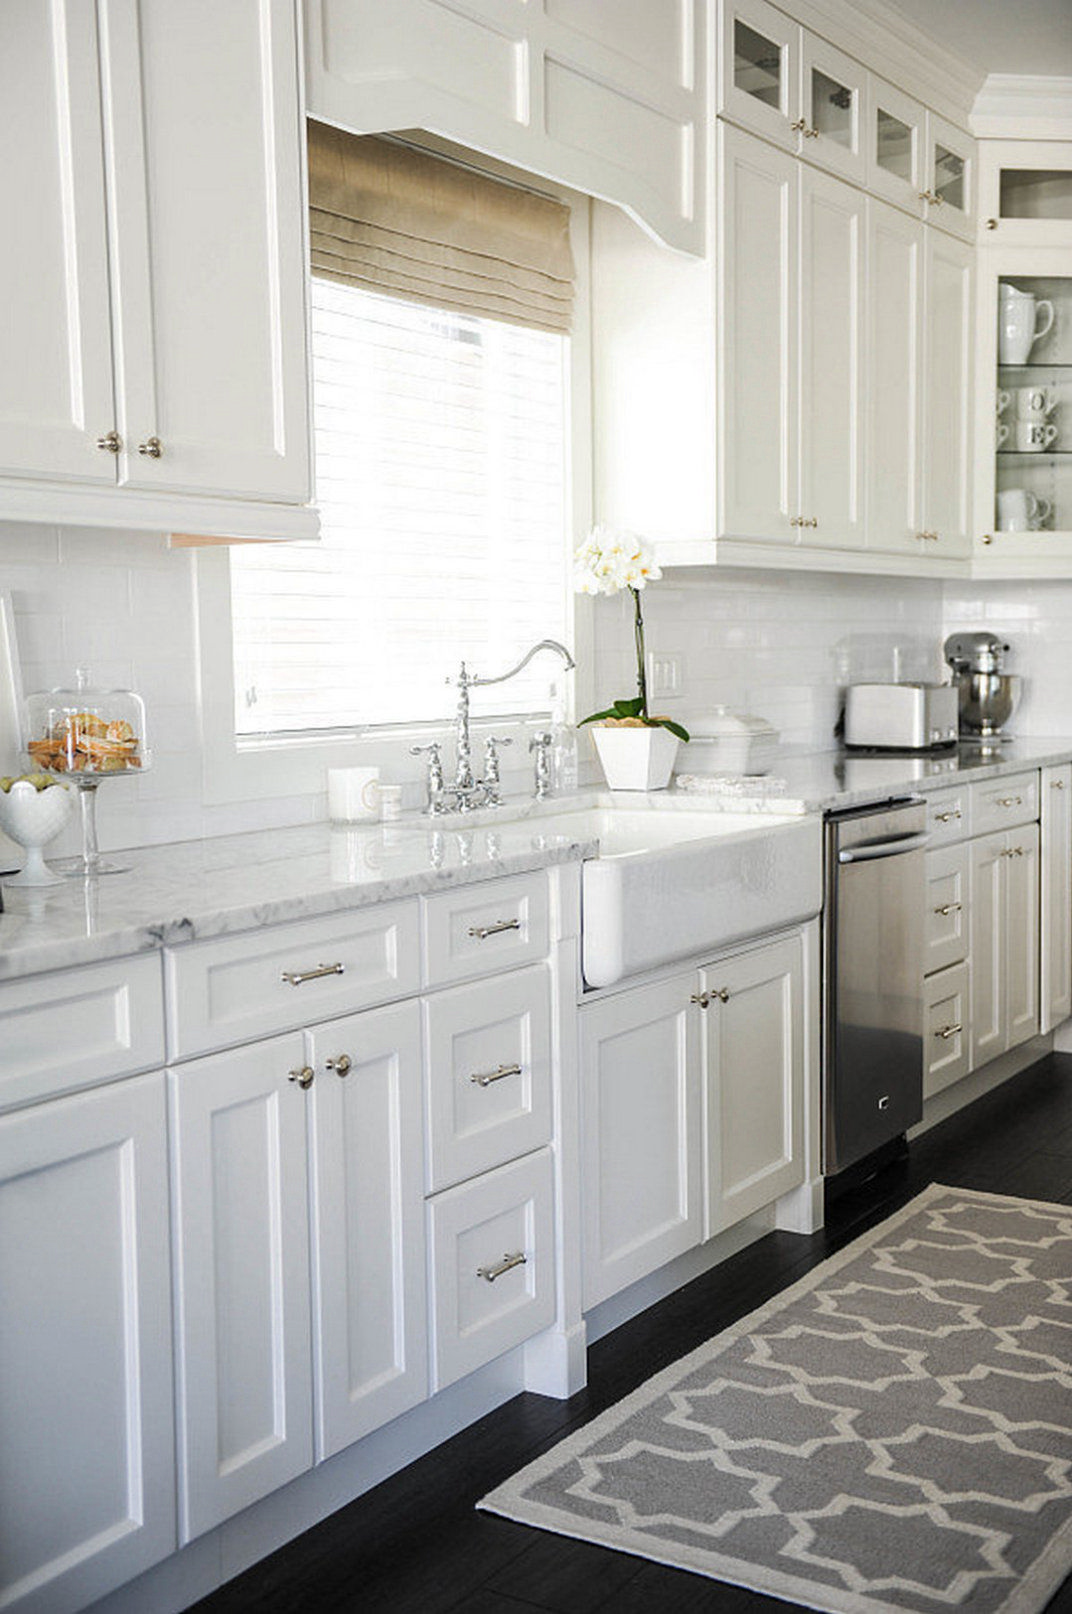 Exceptional 57 Insanely Cool White Kitchen Cabinet For Extra Storage   Coo Architecture